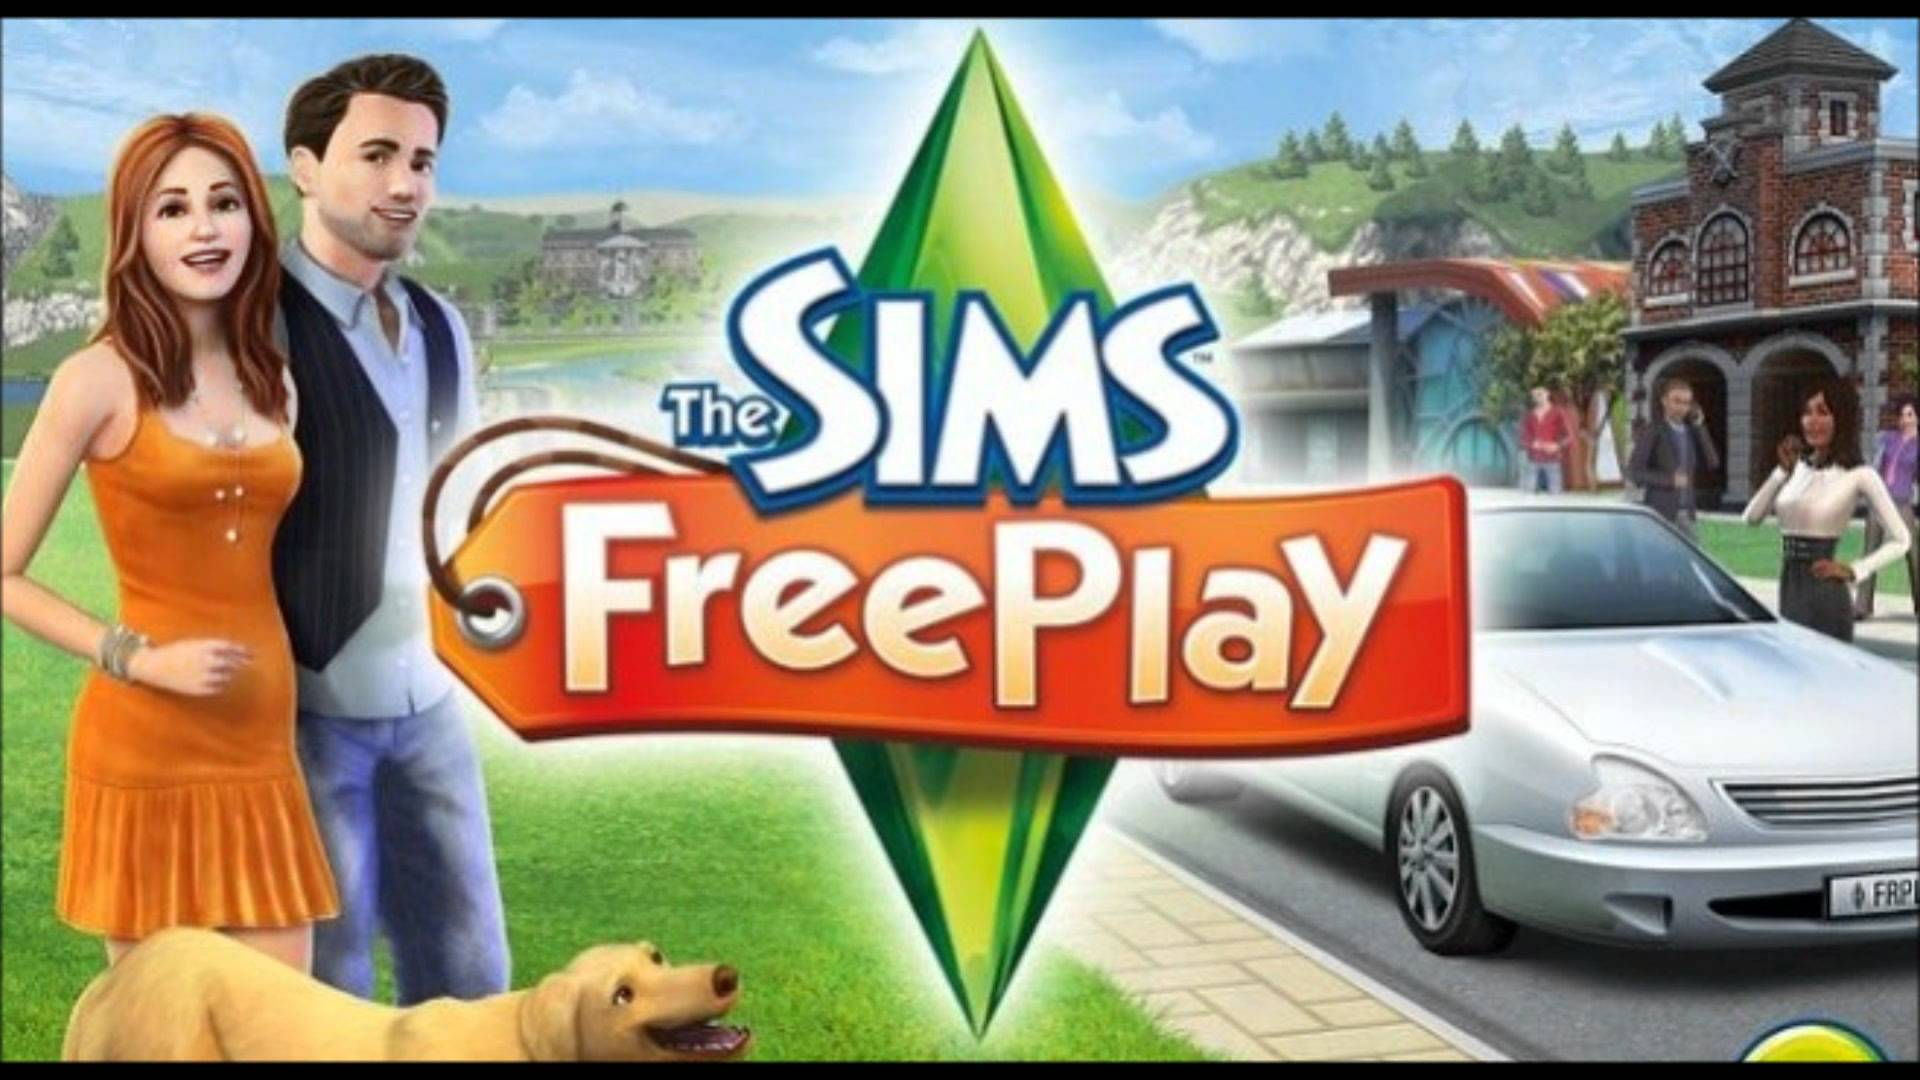 [INFO] FREEPLAY.PRO THE SIMS FREEPLAY | UNLIMITED Lifestyle Points and Simoleons